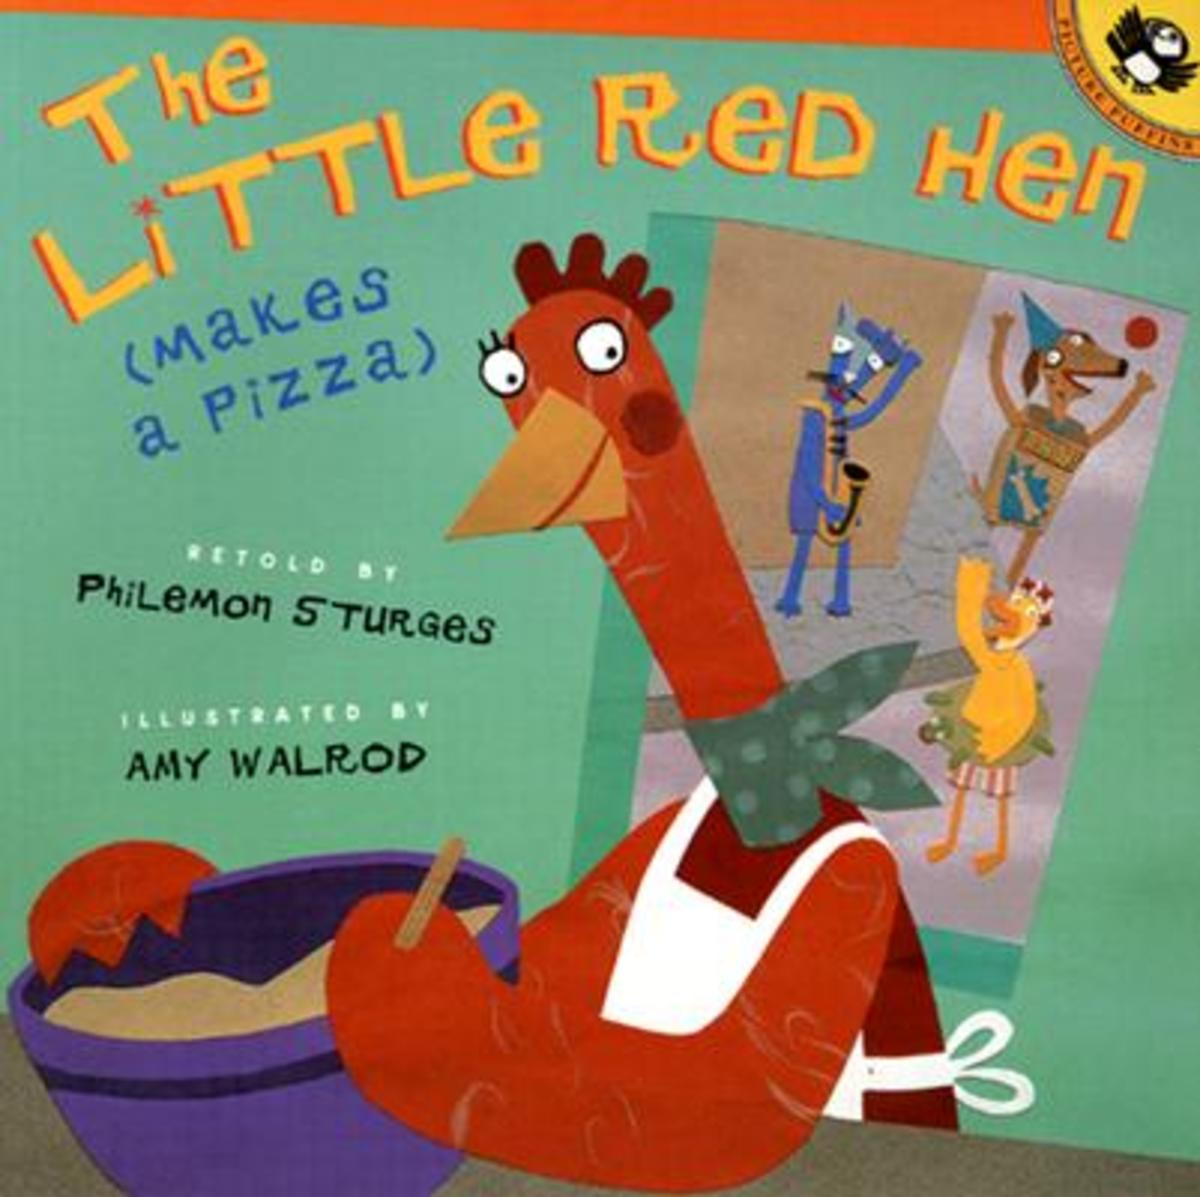 The Little Red Hen by Philemon Sturges, Illustrated by Amy Walrod